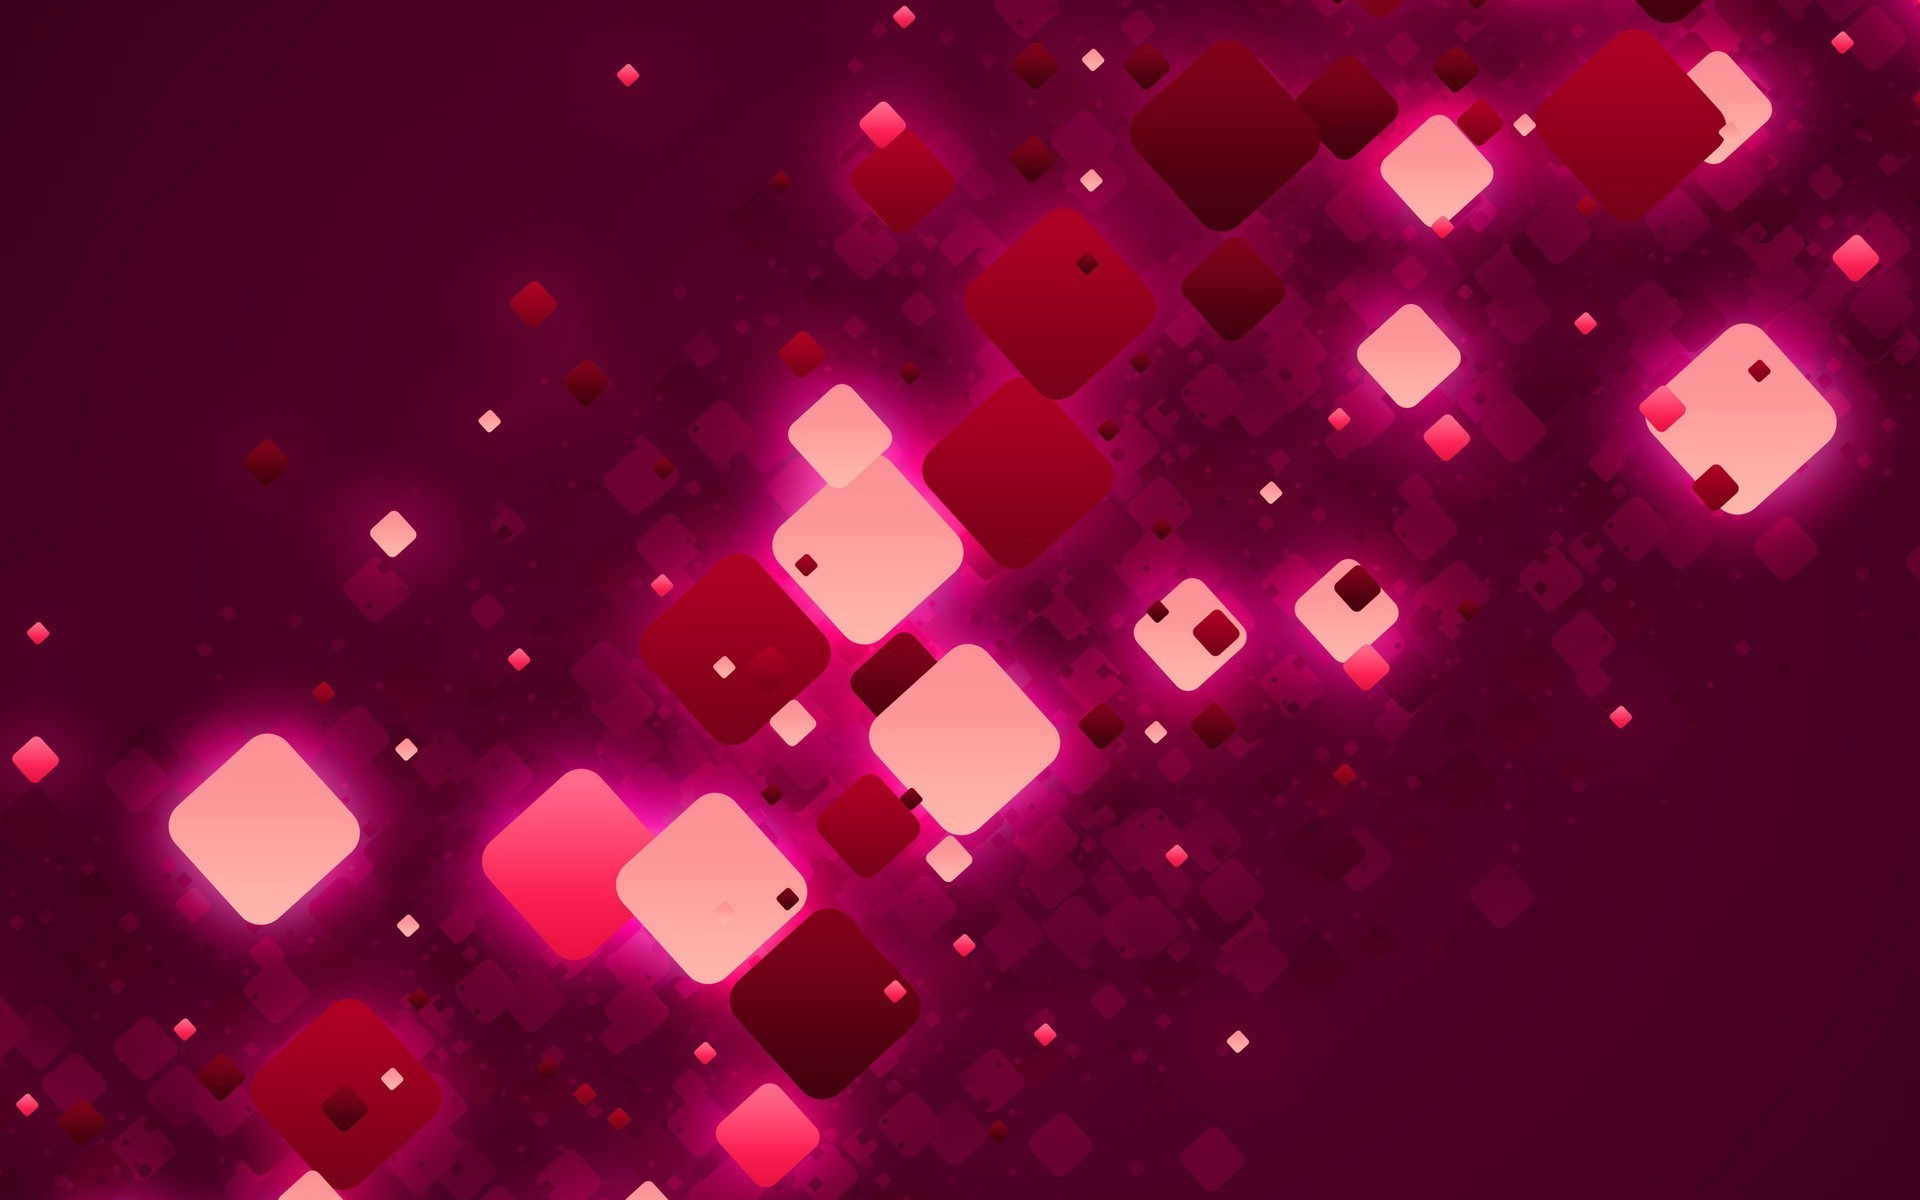 Red And Pink Squares Abstract Hd Wallpaper   Pink Wallpaper Full 1920x1200